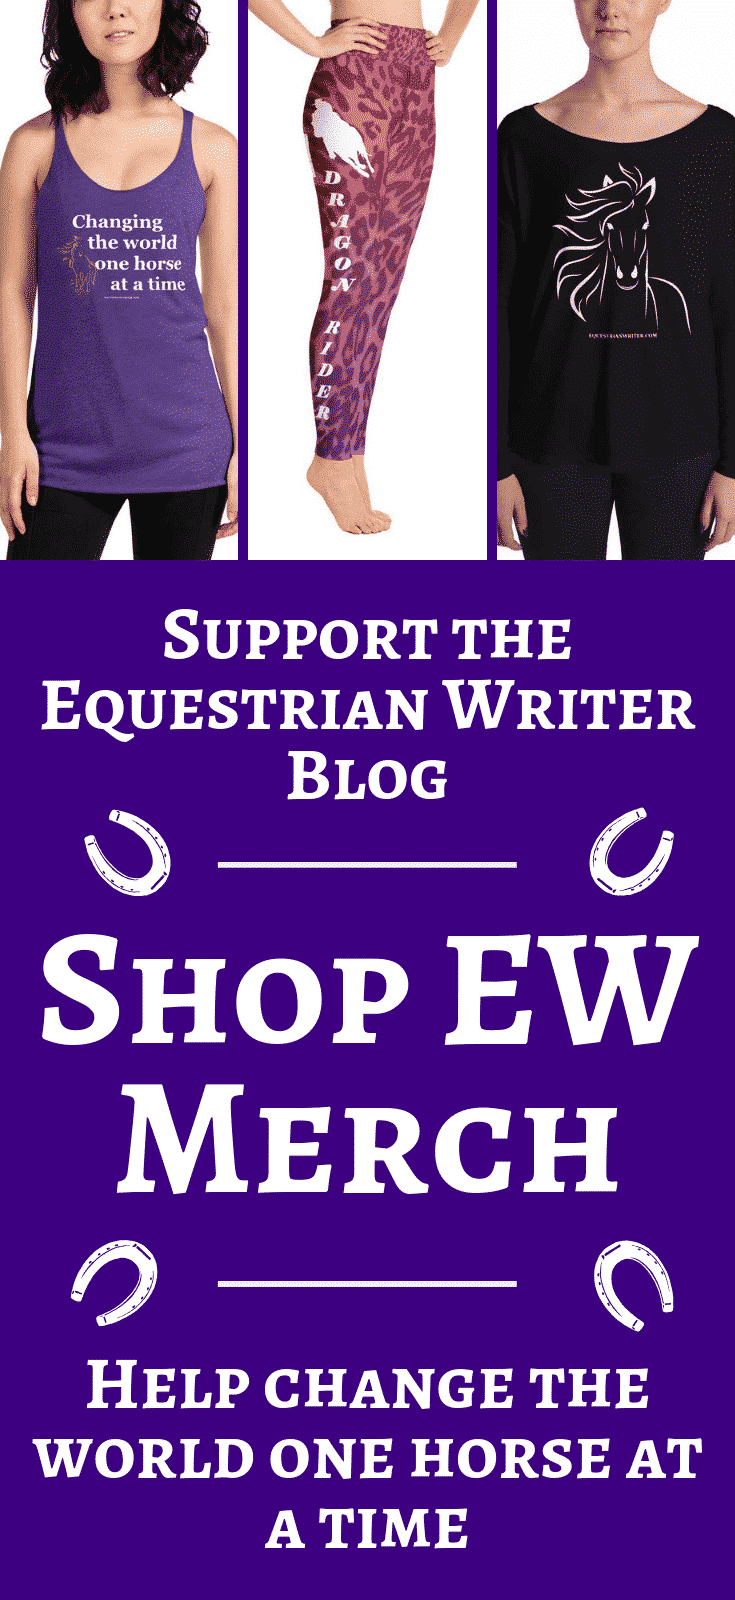 Support the Educational Efforts of the Equestrian Writer Blog. Shop EW Merch